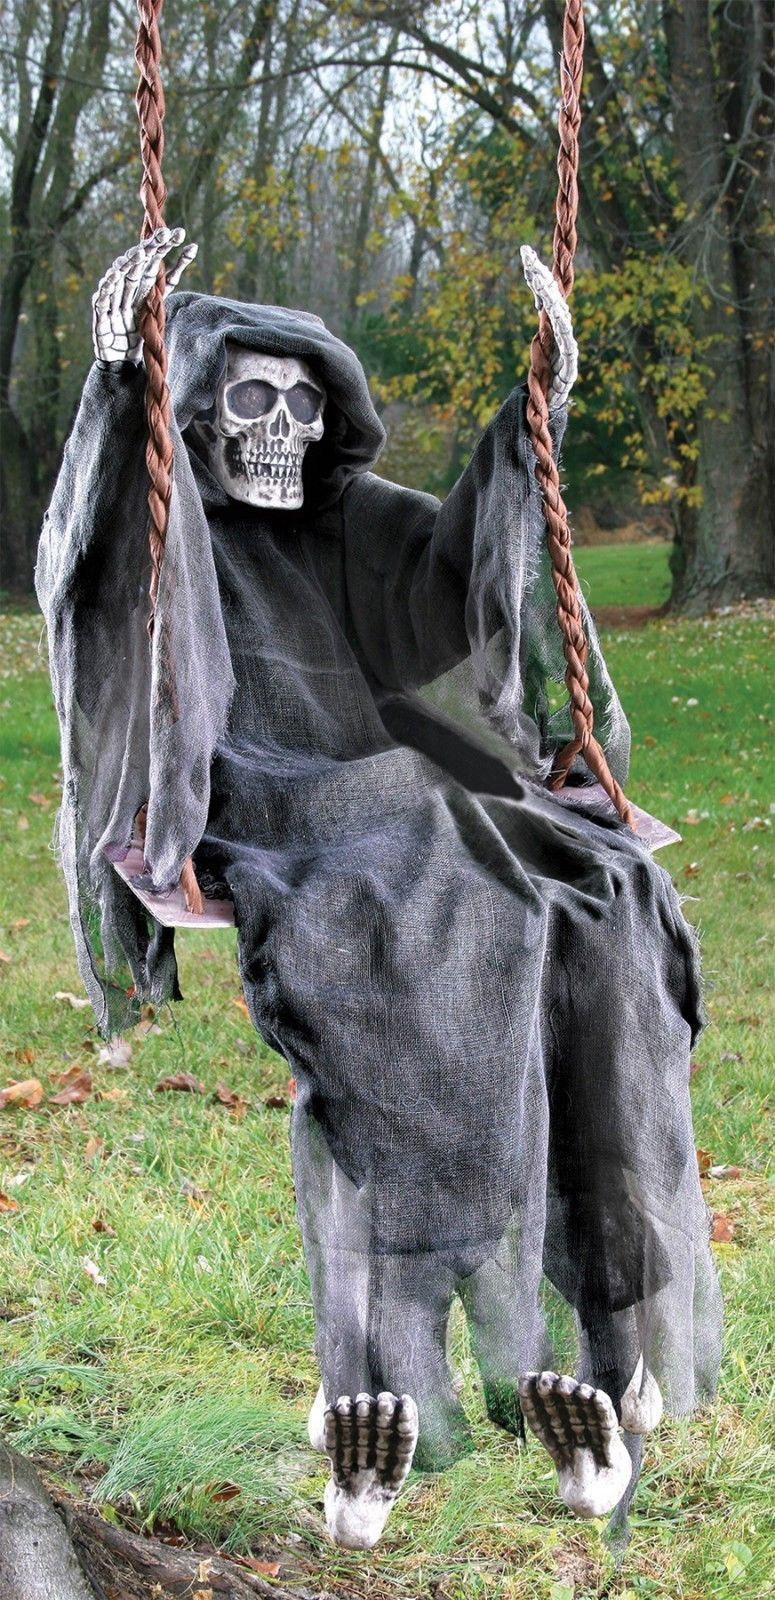 Life Size 5 FT HANGING Swinging Skeleton Dead OUTDOOR HALLOWEEN Decor Prop NEW